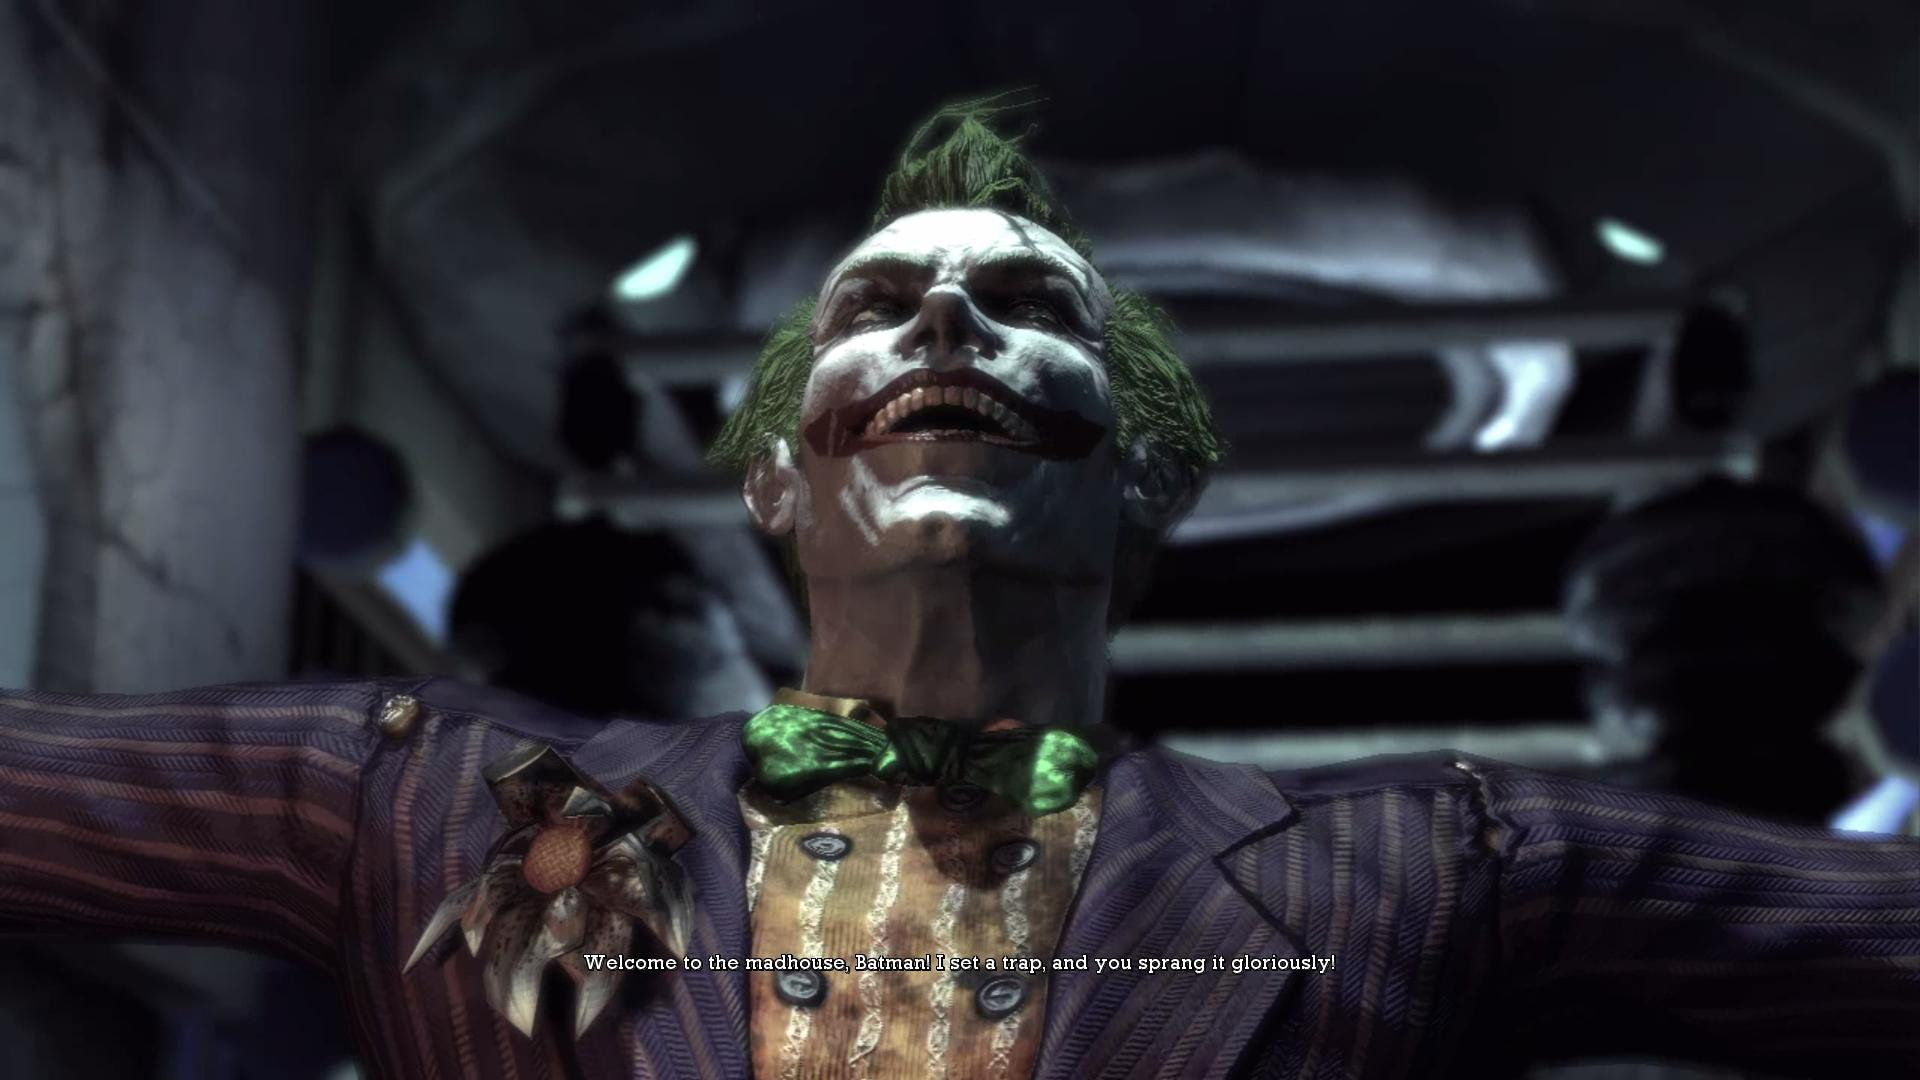 Batman Arkham Asylum Joker wallpaper   138776 1920x1080